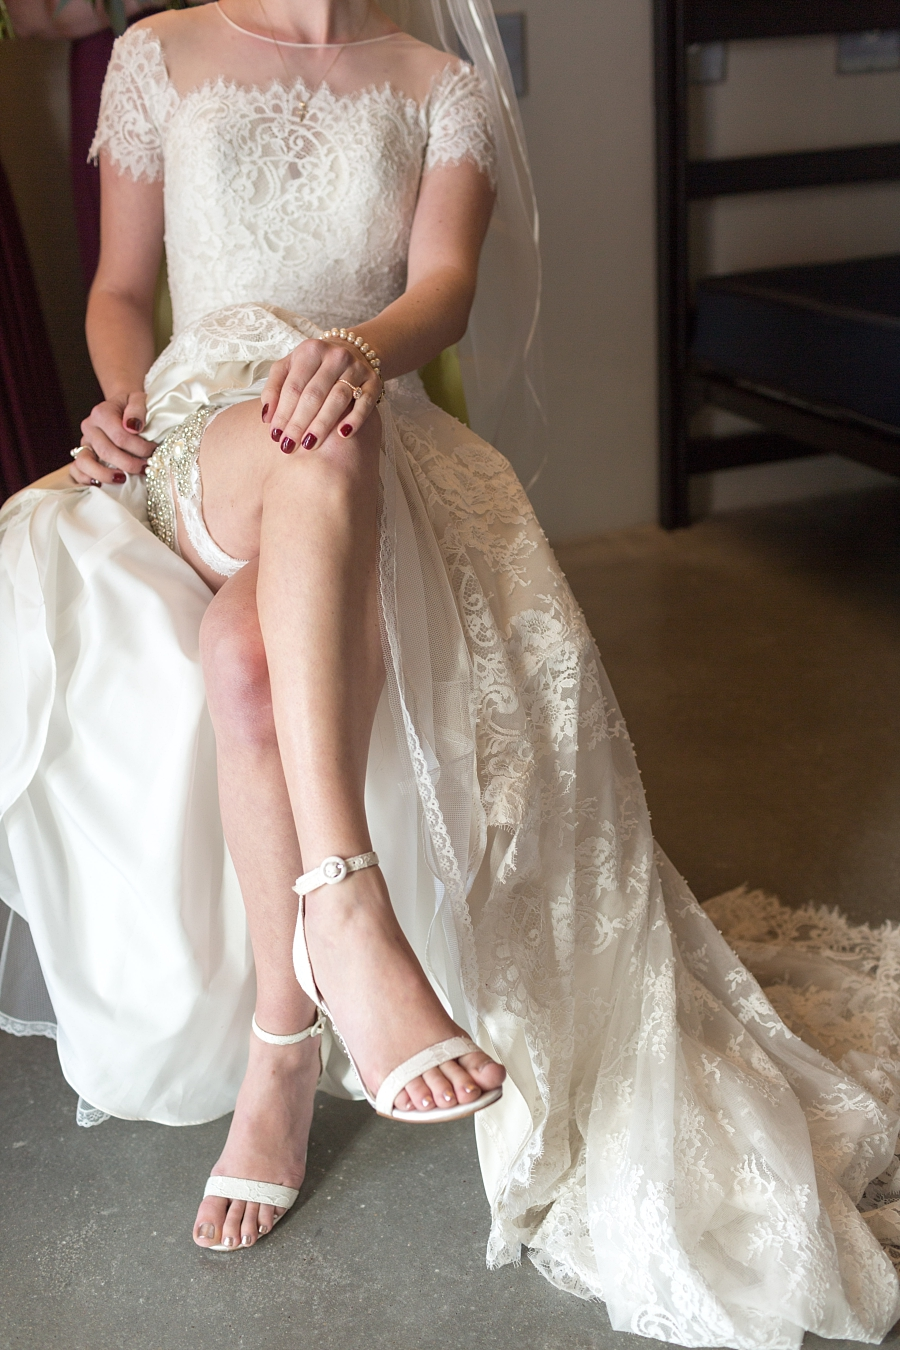 Stacy-Anderson-Photography-Galveston-Sea-Scout-Base-Wedding-Photographer_0015.jpg